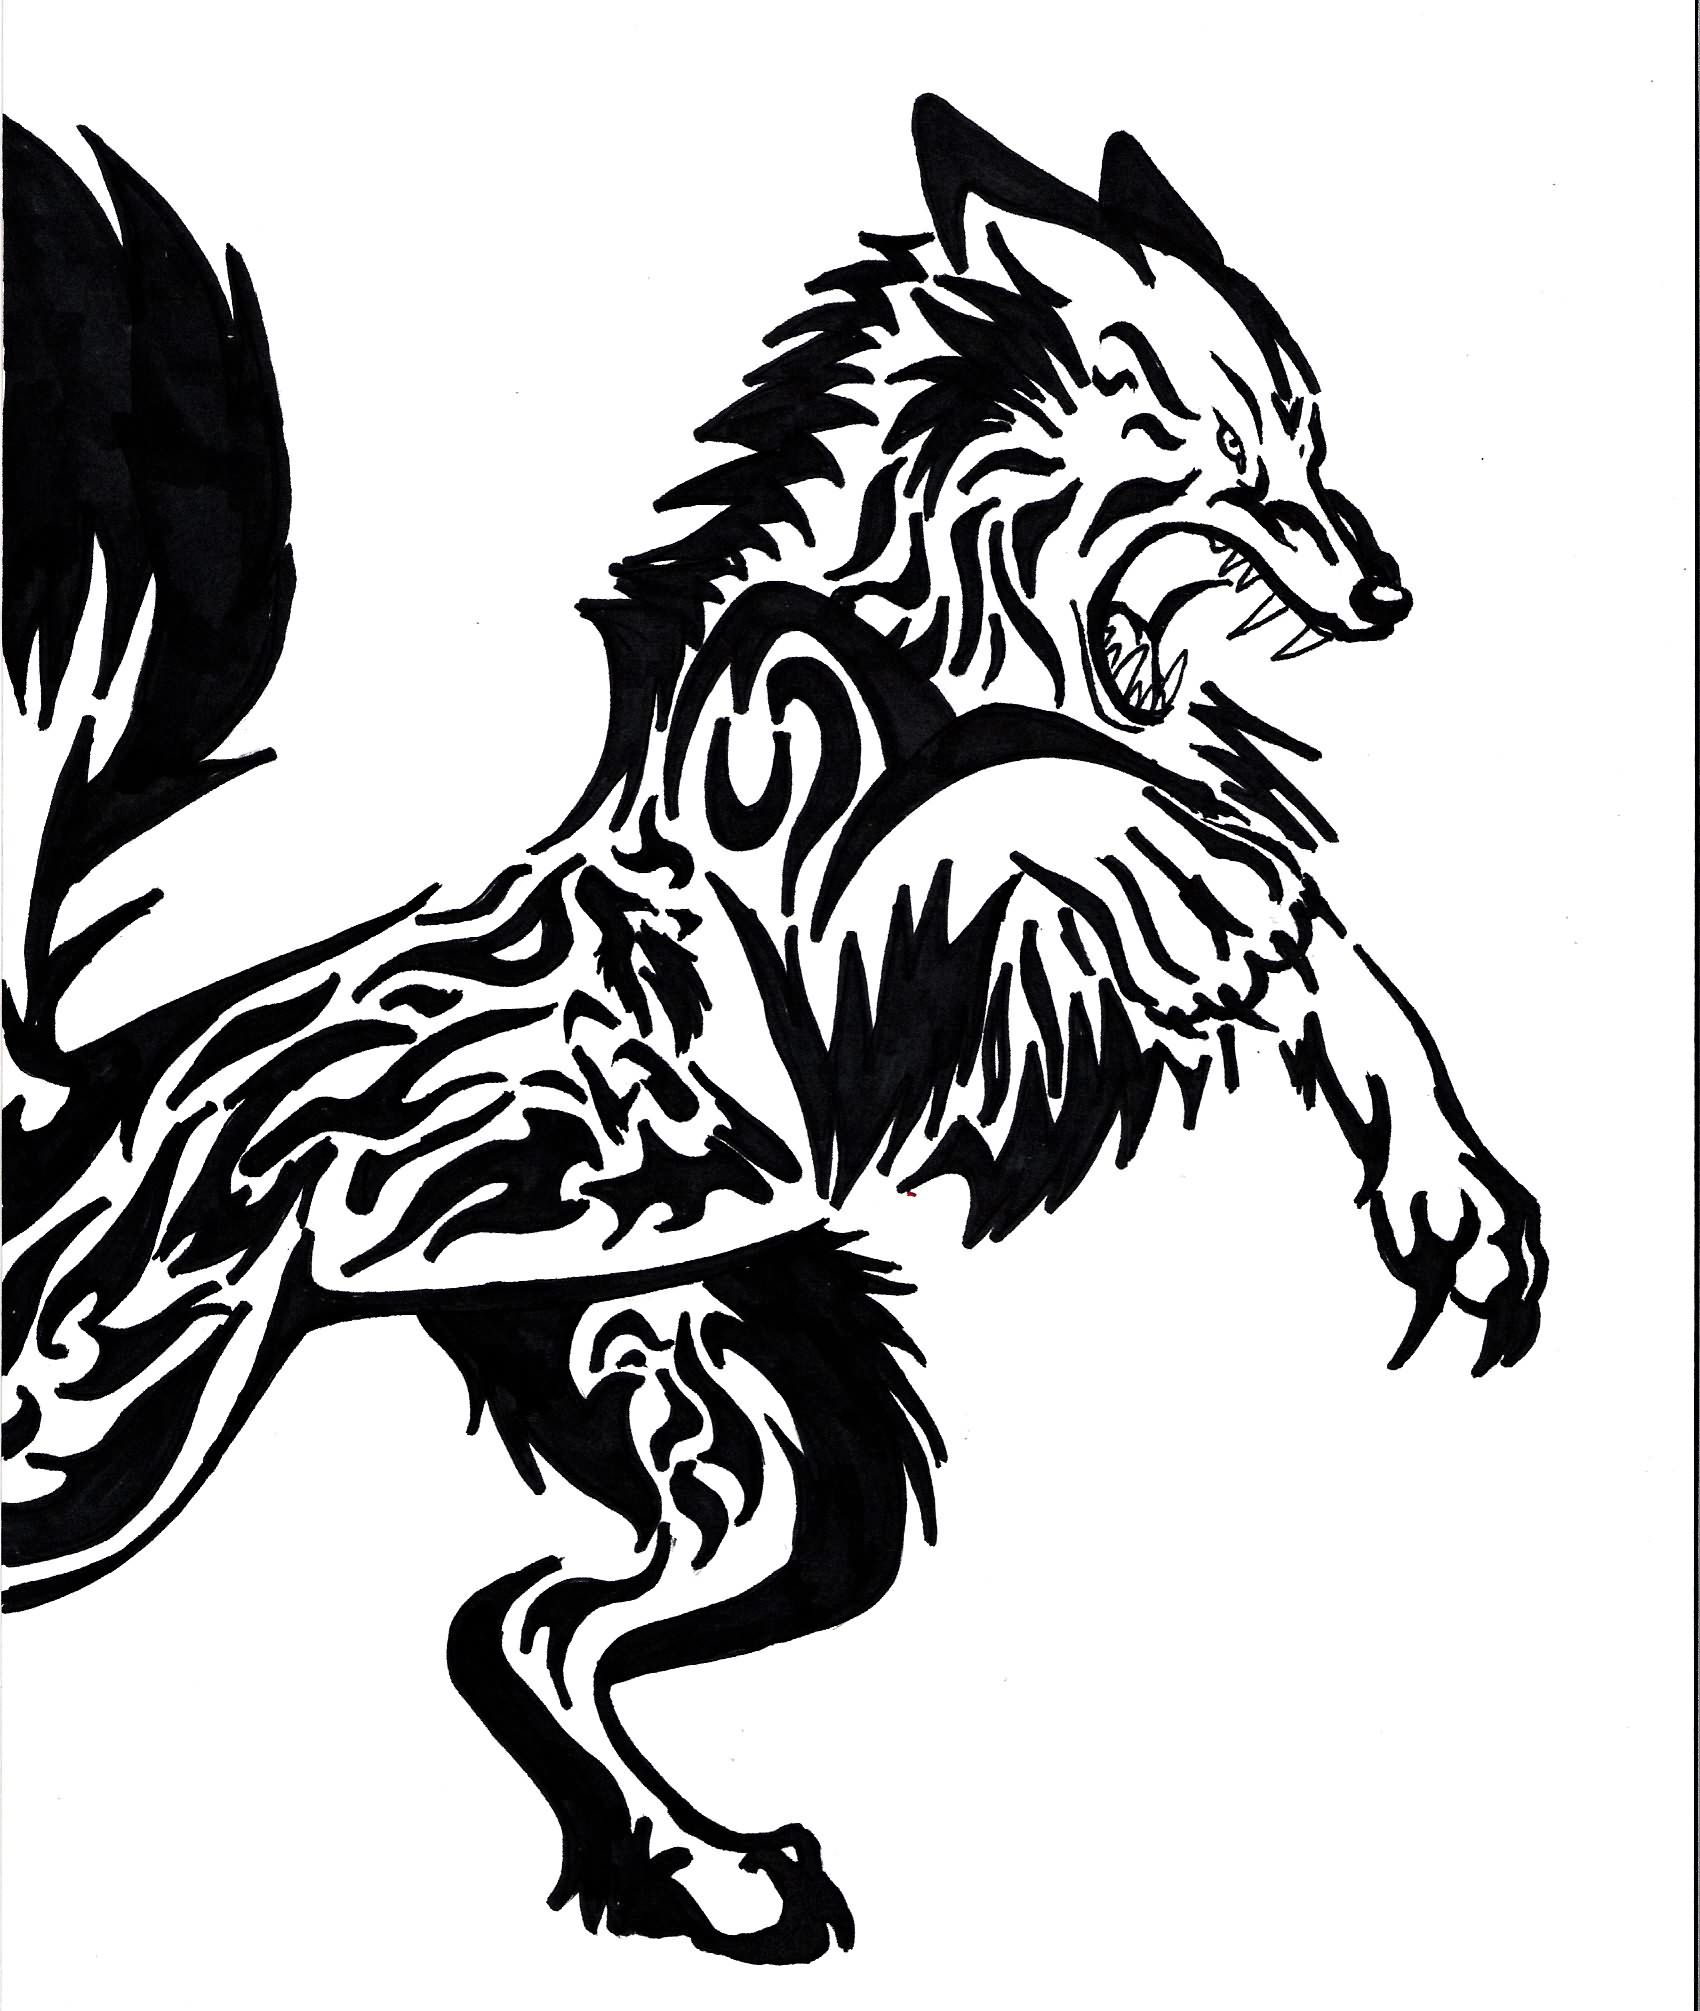 Wolf Tribal Tattoo Design Tattoes Idea 2015 2016 Tribal Wolf Tattoo Tribal Animal Tattoos Tribal Wolf